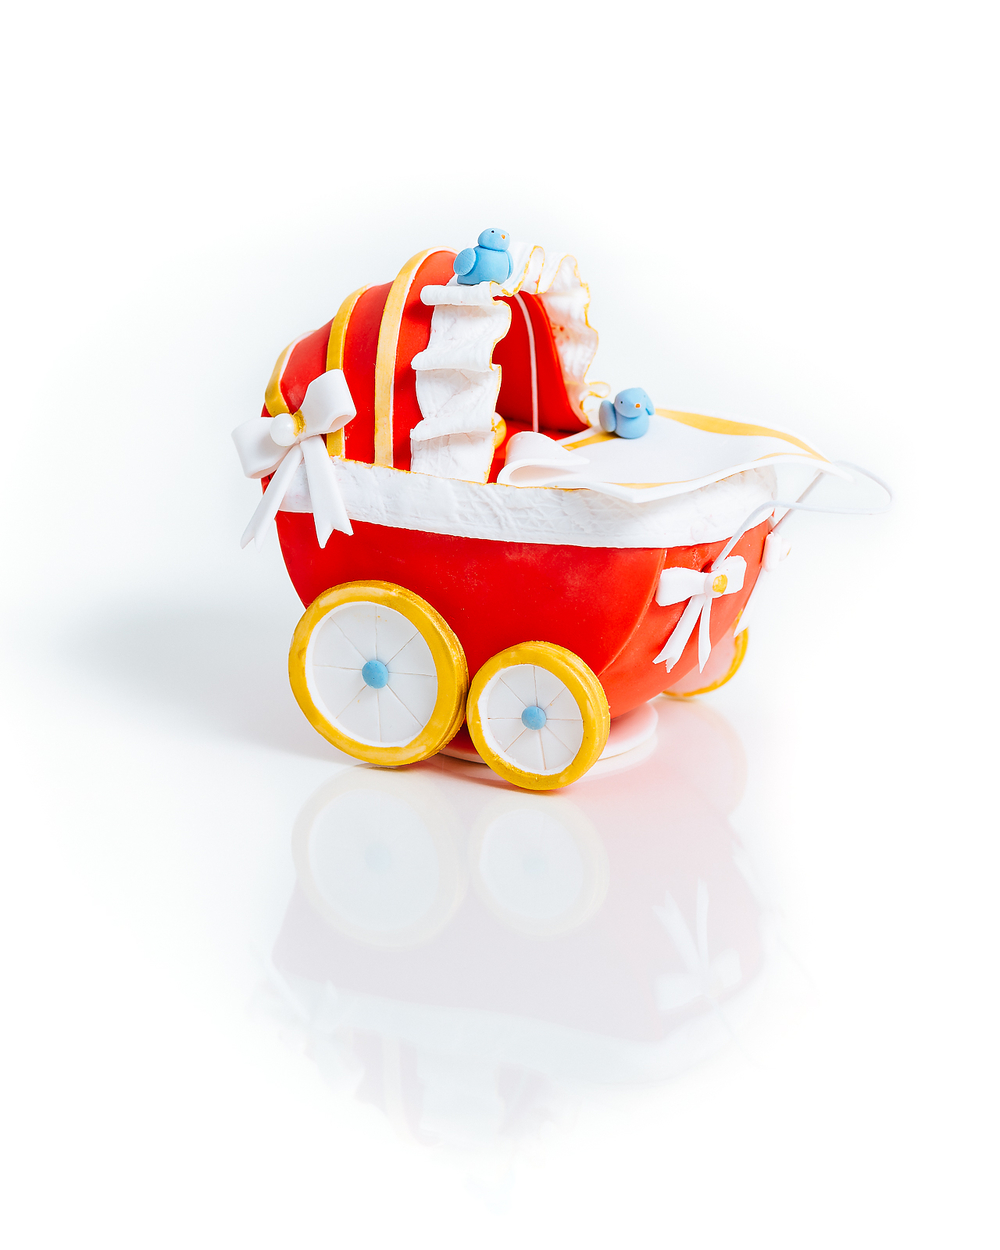 Vintage Baby Carriage Cake - Sugar Lane Cake Shop